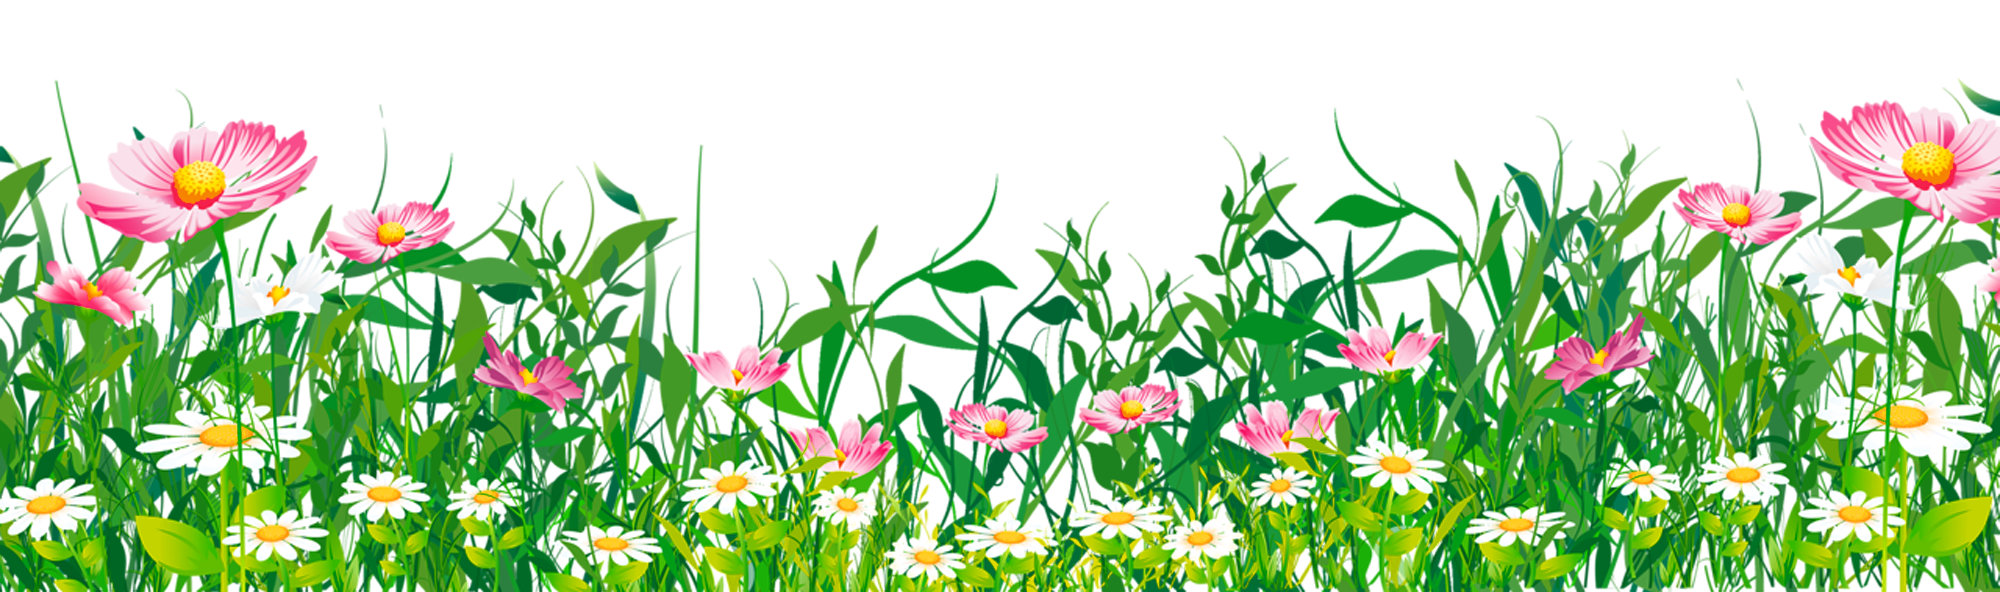 Grass with flowers png clipart crafts pinterest for Grass flower